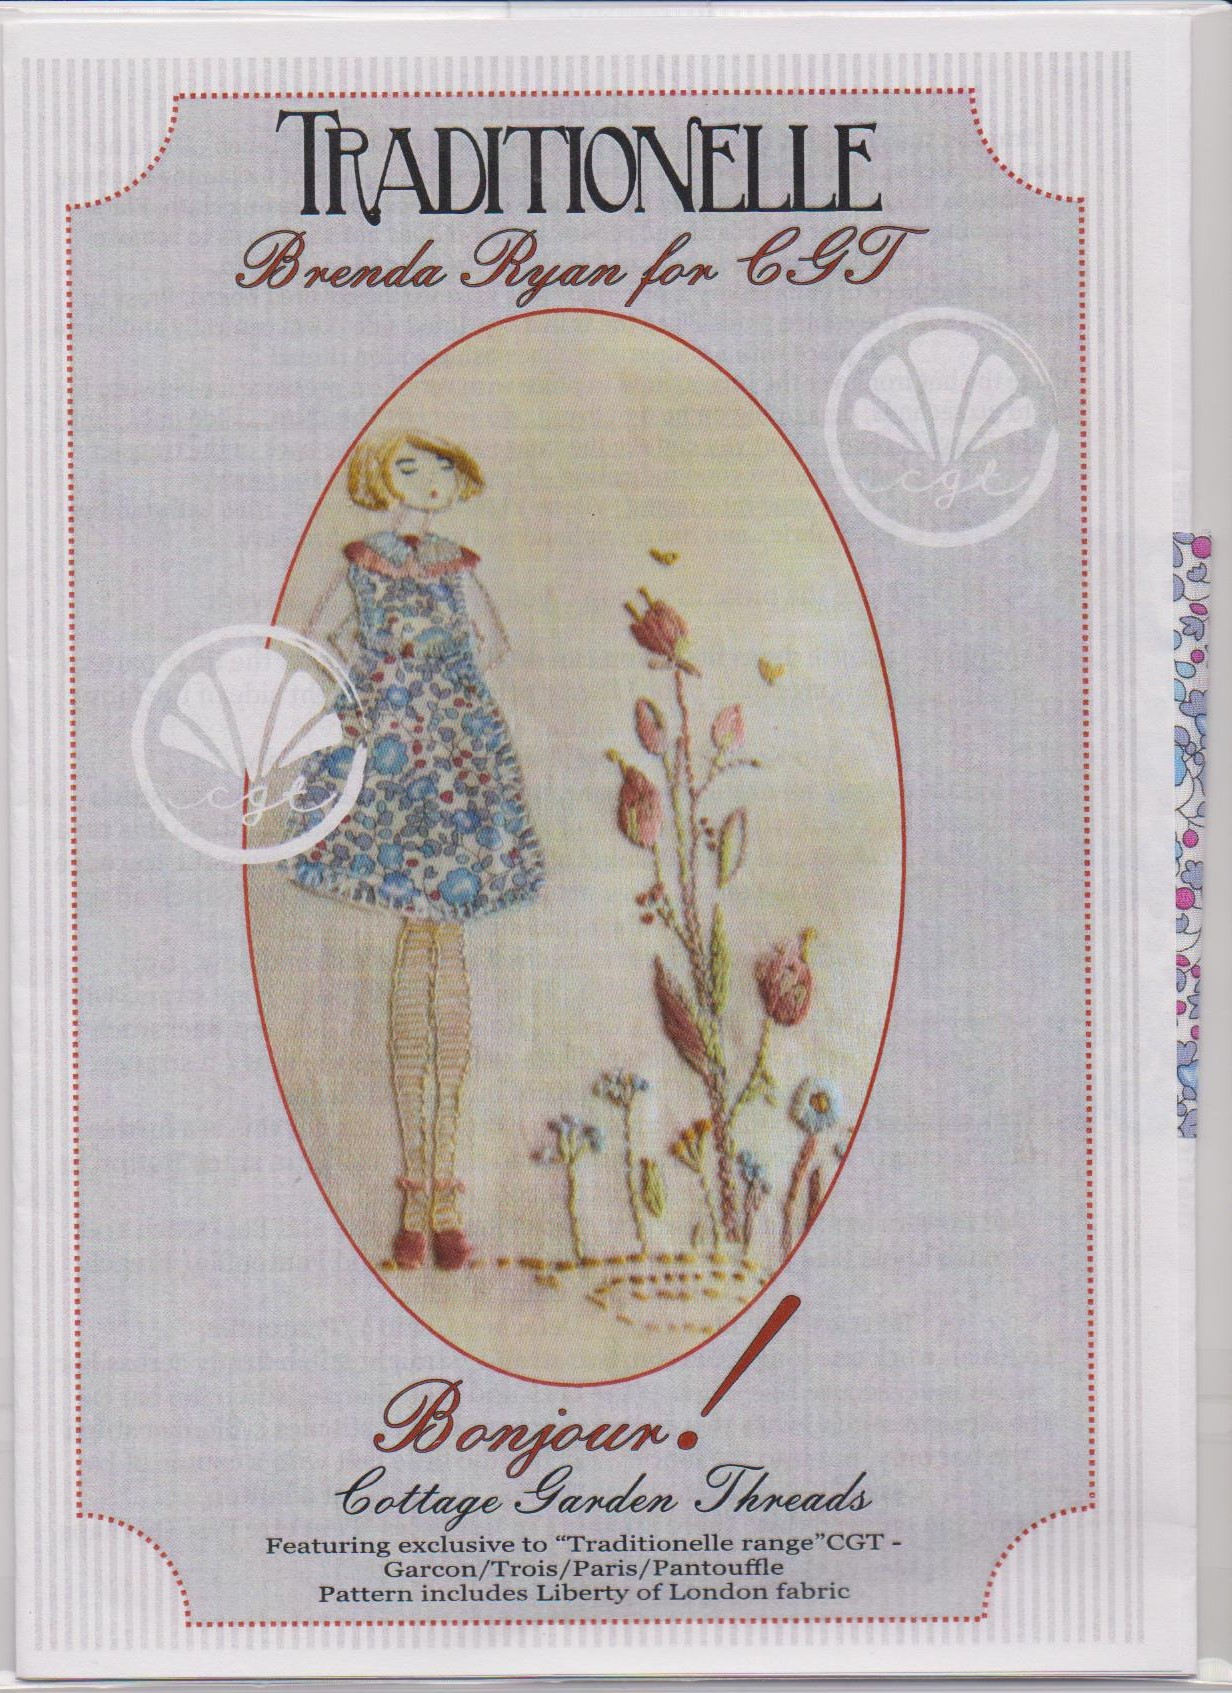 Bonjour! Embroidery pattern by Brenda Ryan for Cottage Garden Threads